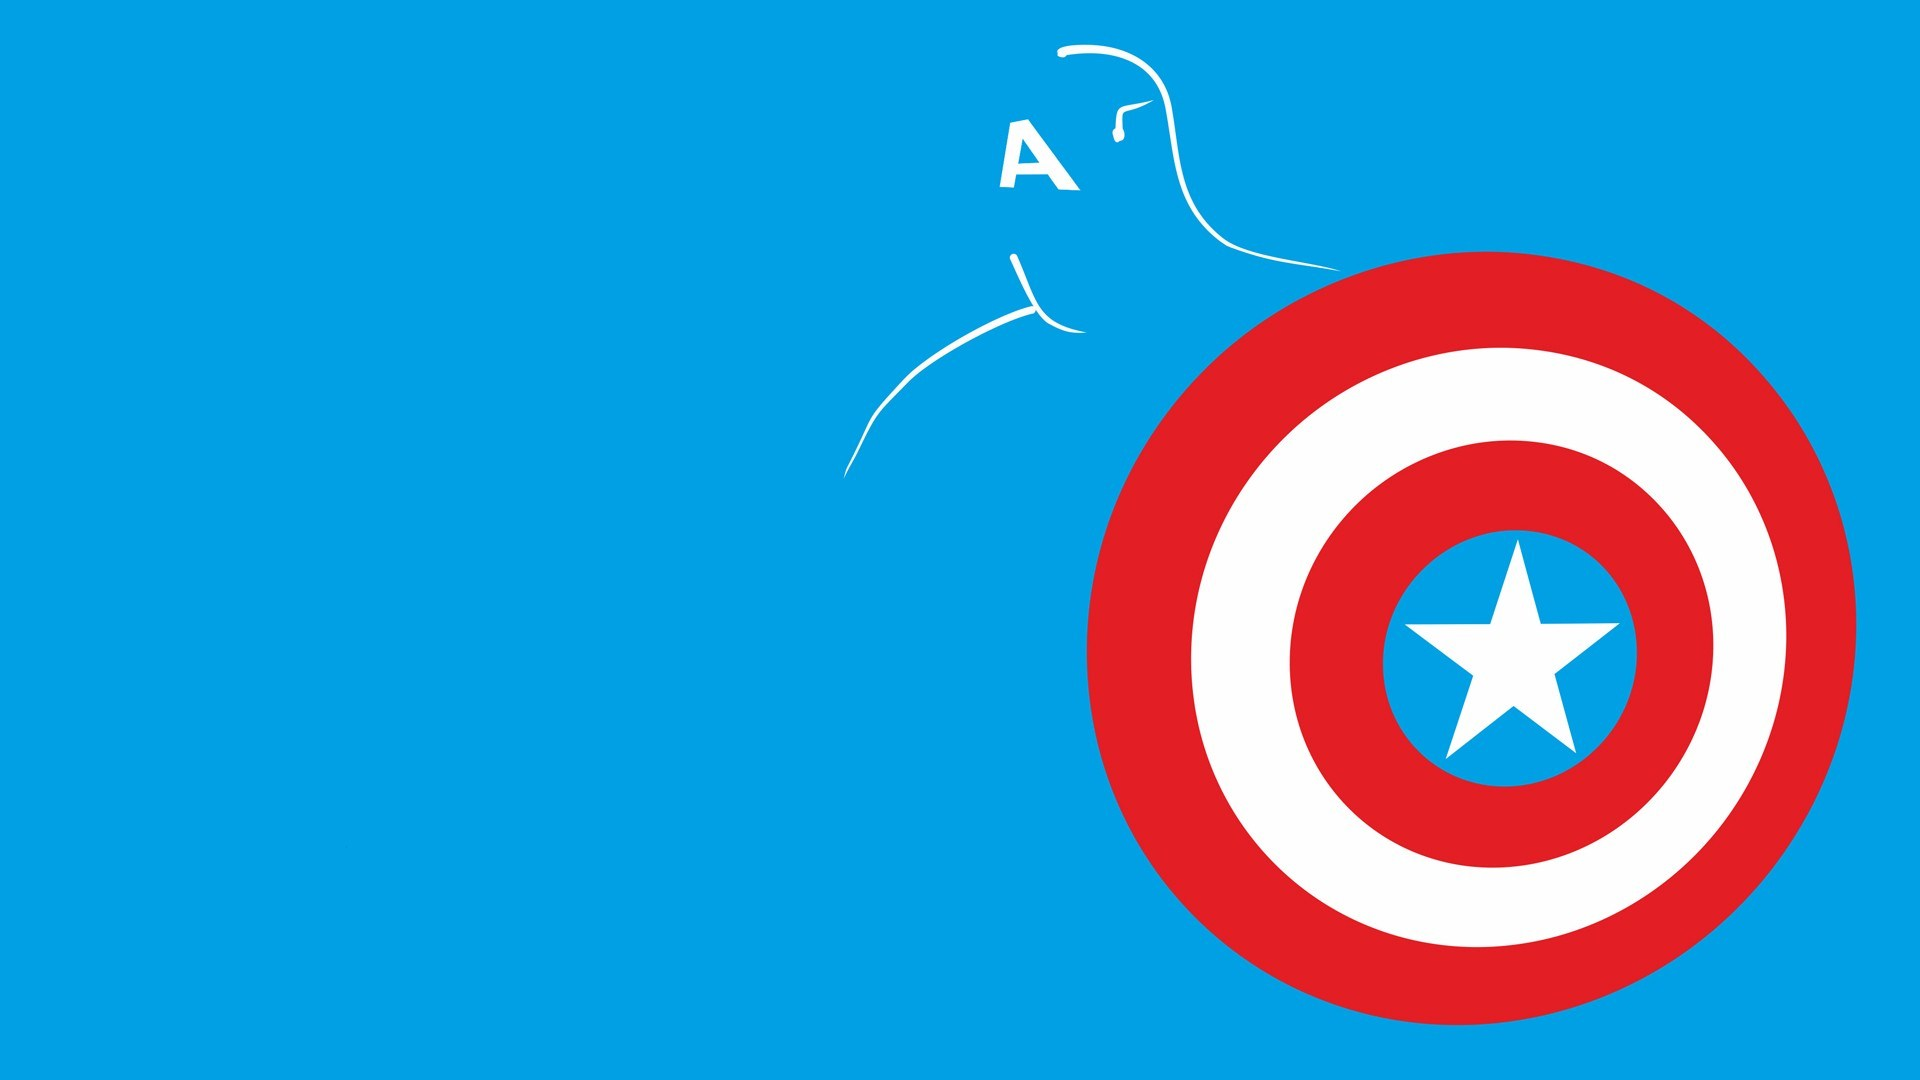 Captain America Logo Iphone Wallpaper Captain america art 1920x1080